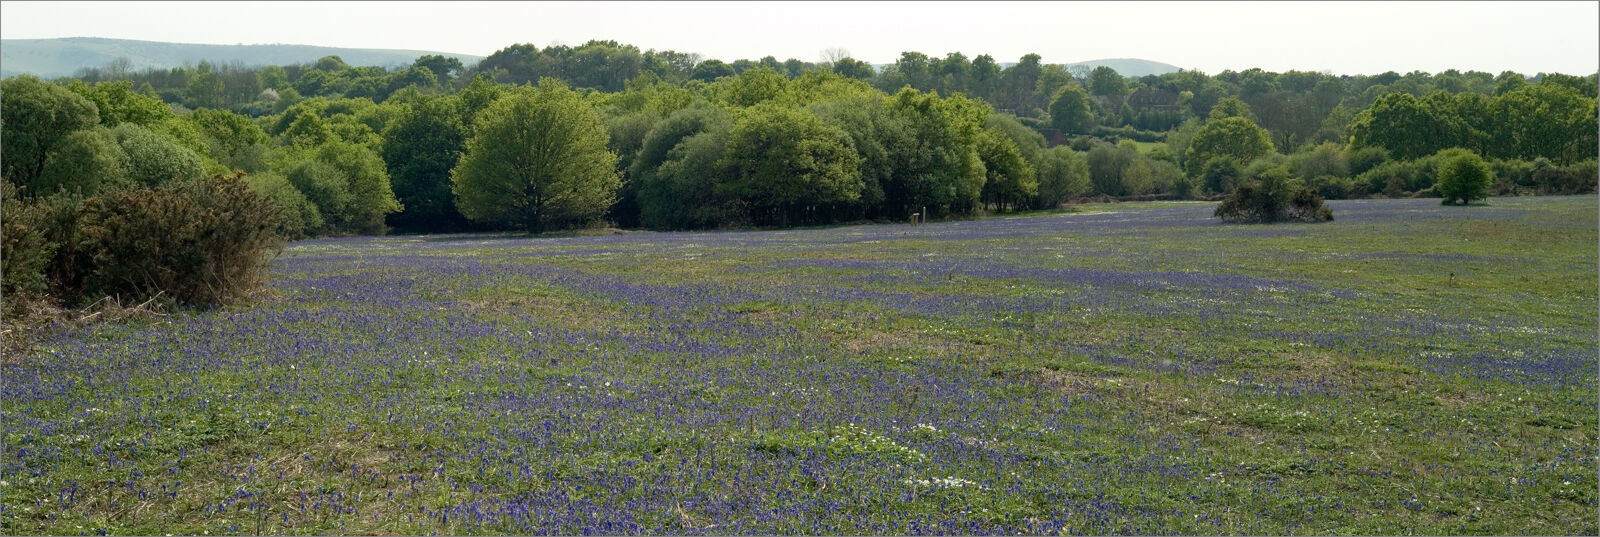 Spring time on Ditchling Common, Bluebells.